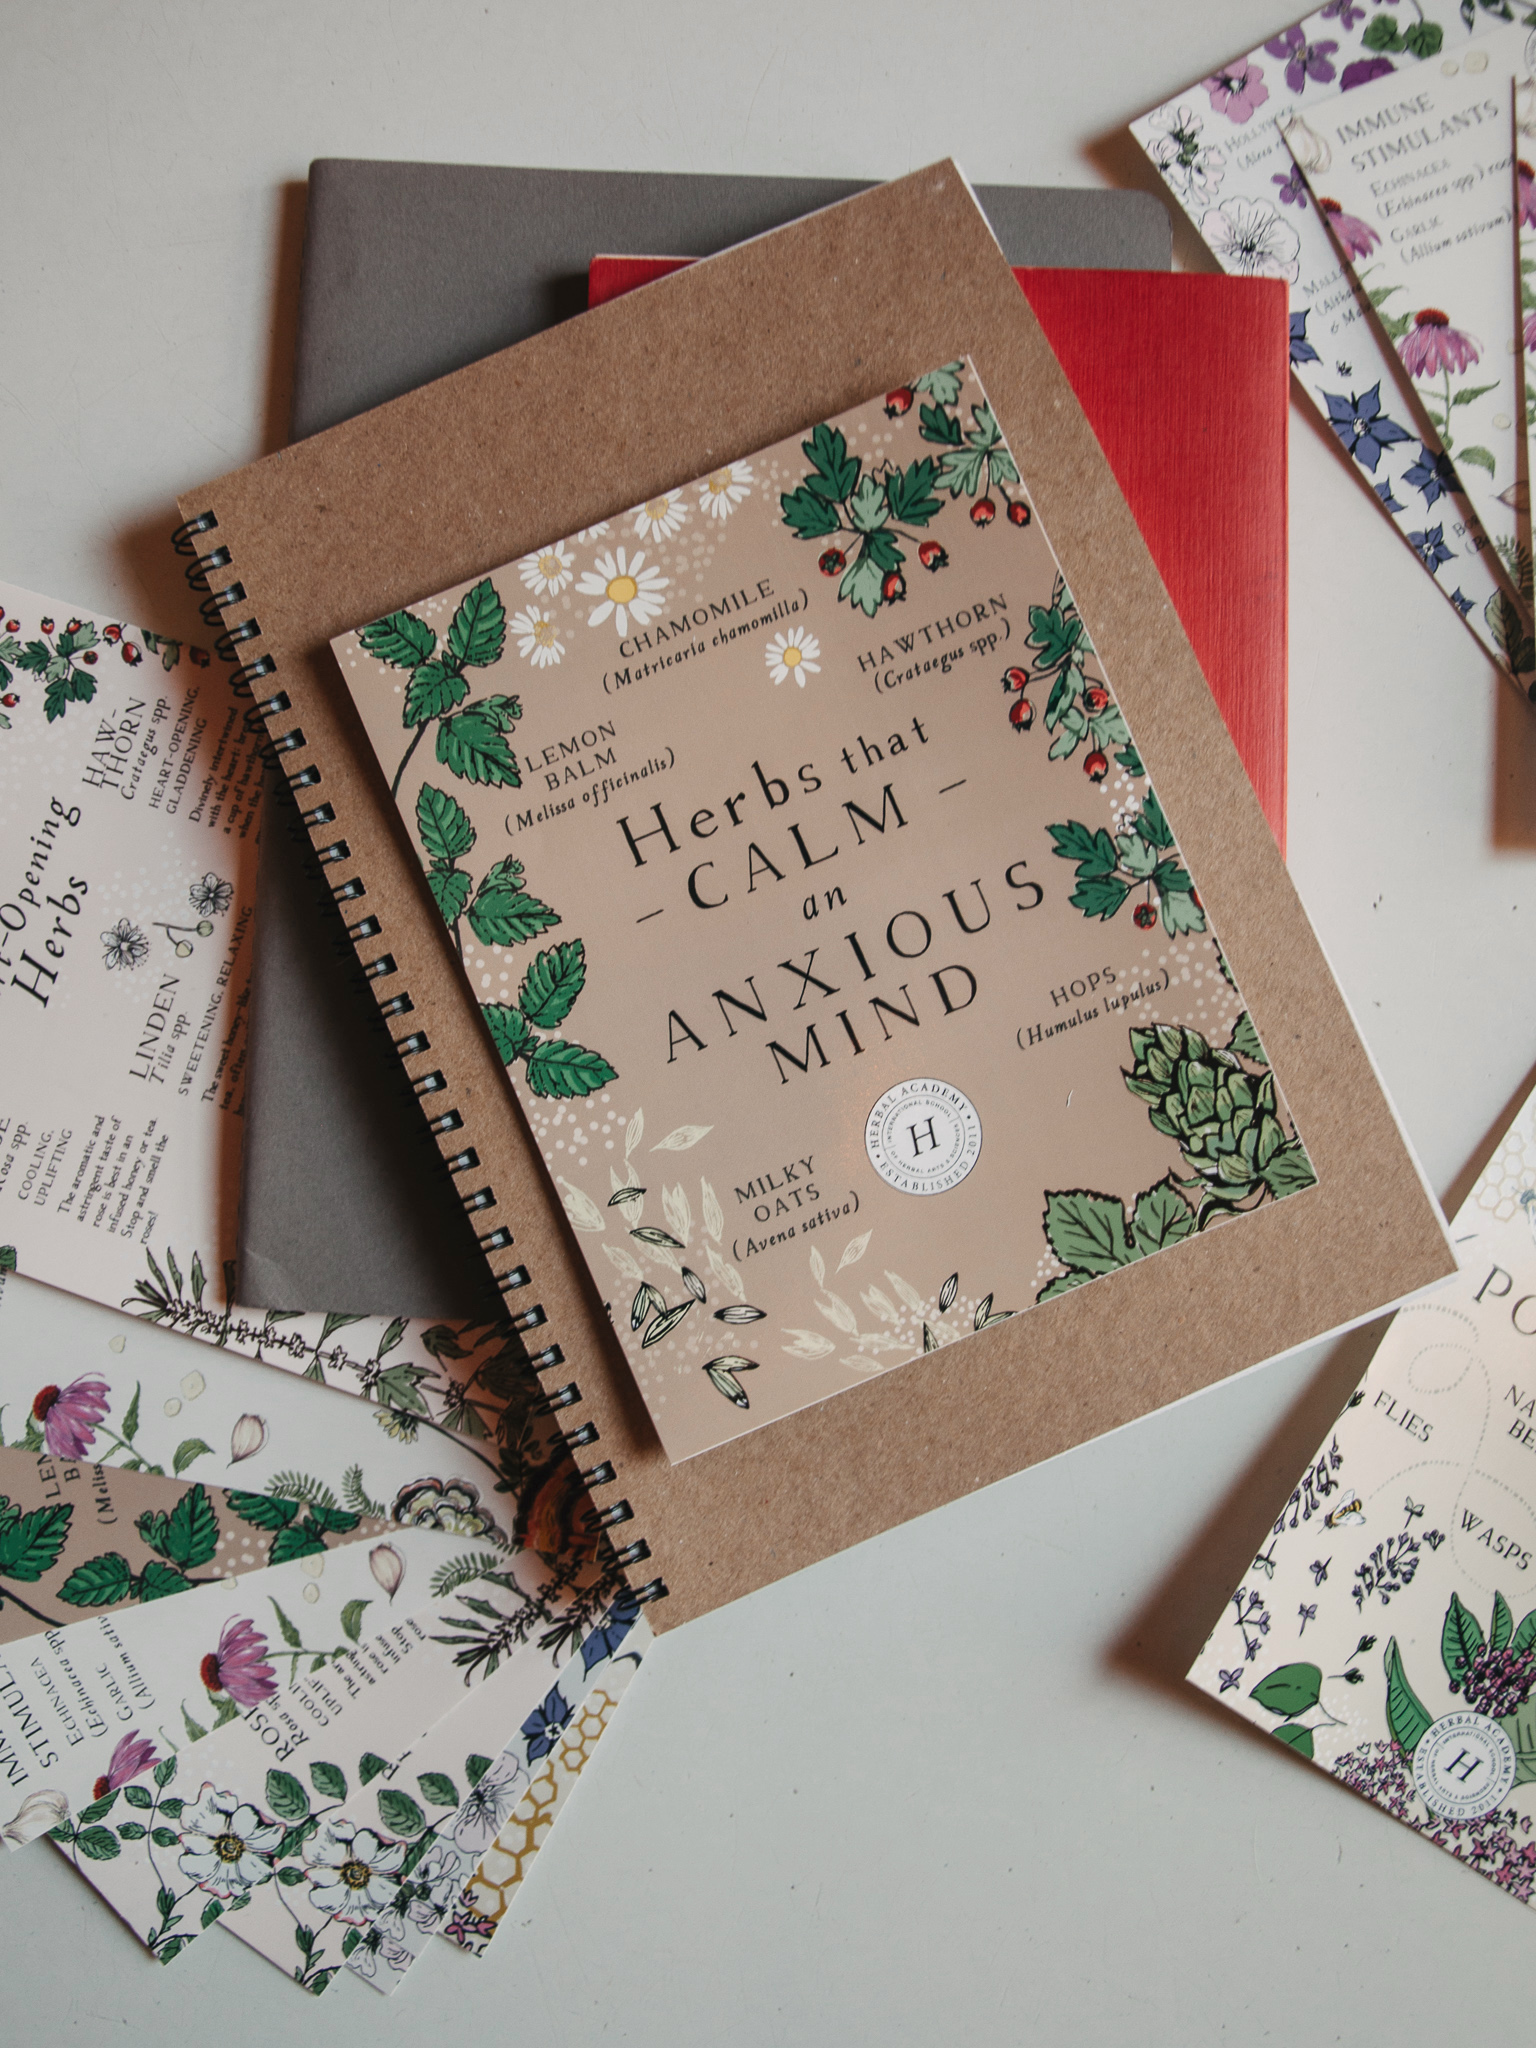 Herbal Academy's Instagram posts in print is one of our favorite affordable gifts for herbalists